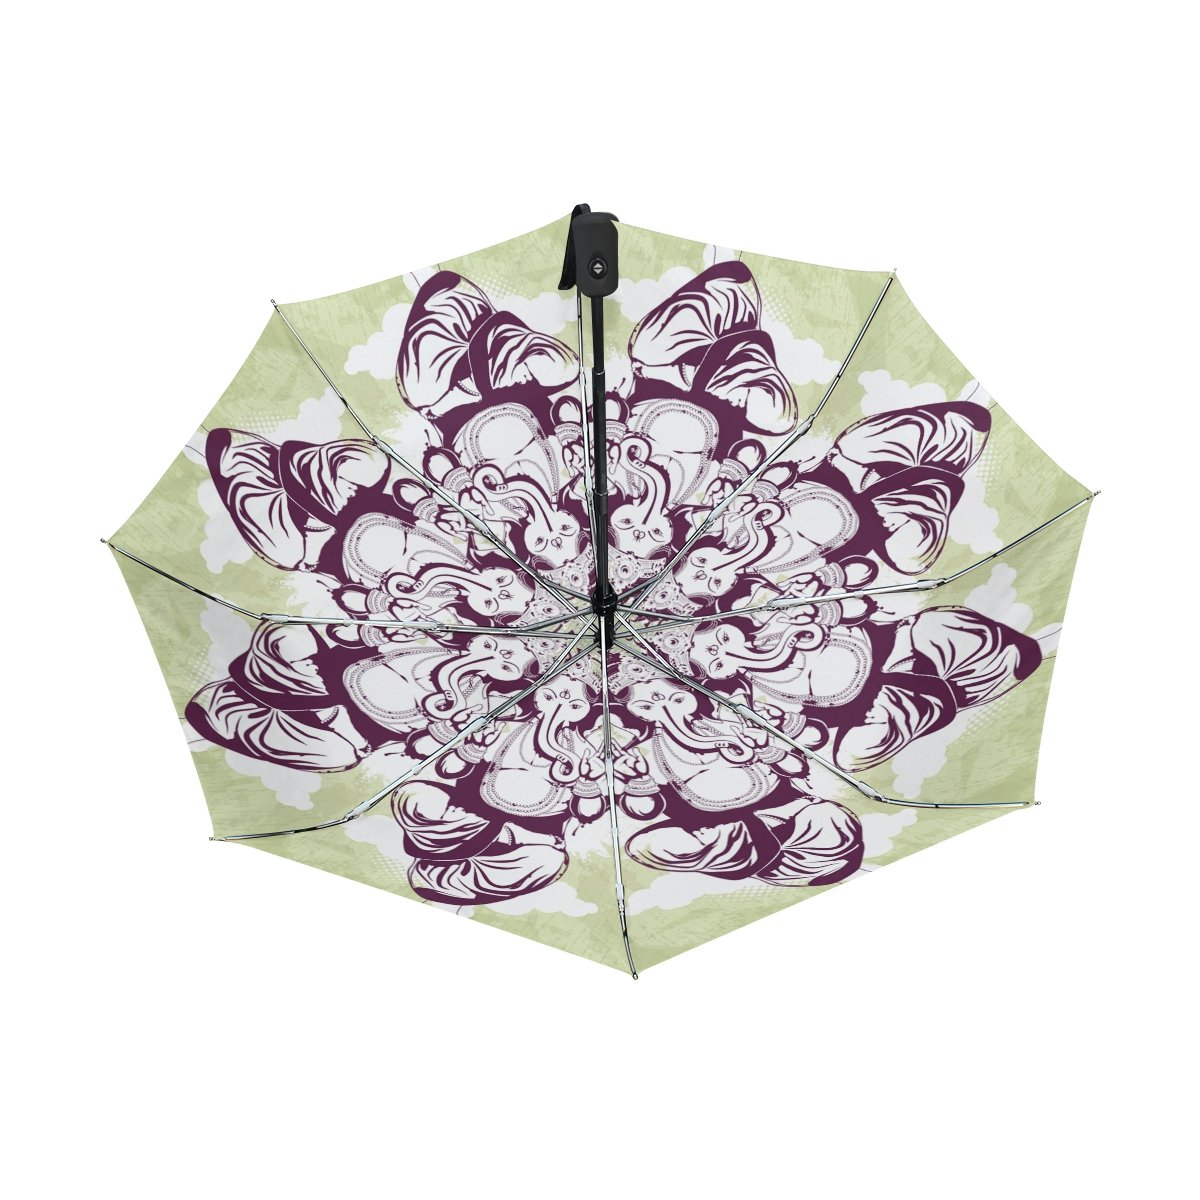 a2f48b10fe8c Amazon.com : Aideess Outer Black Umbrella Indian Ethnic Yoga ...